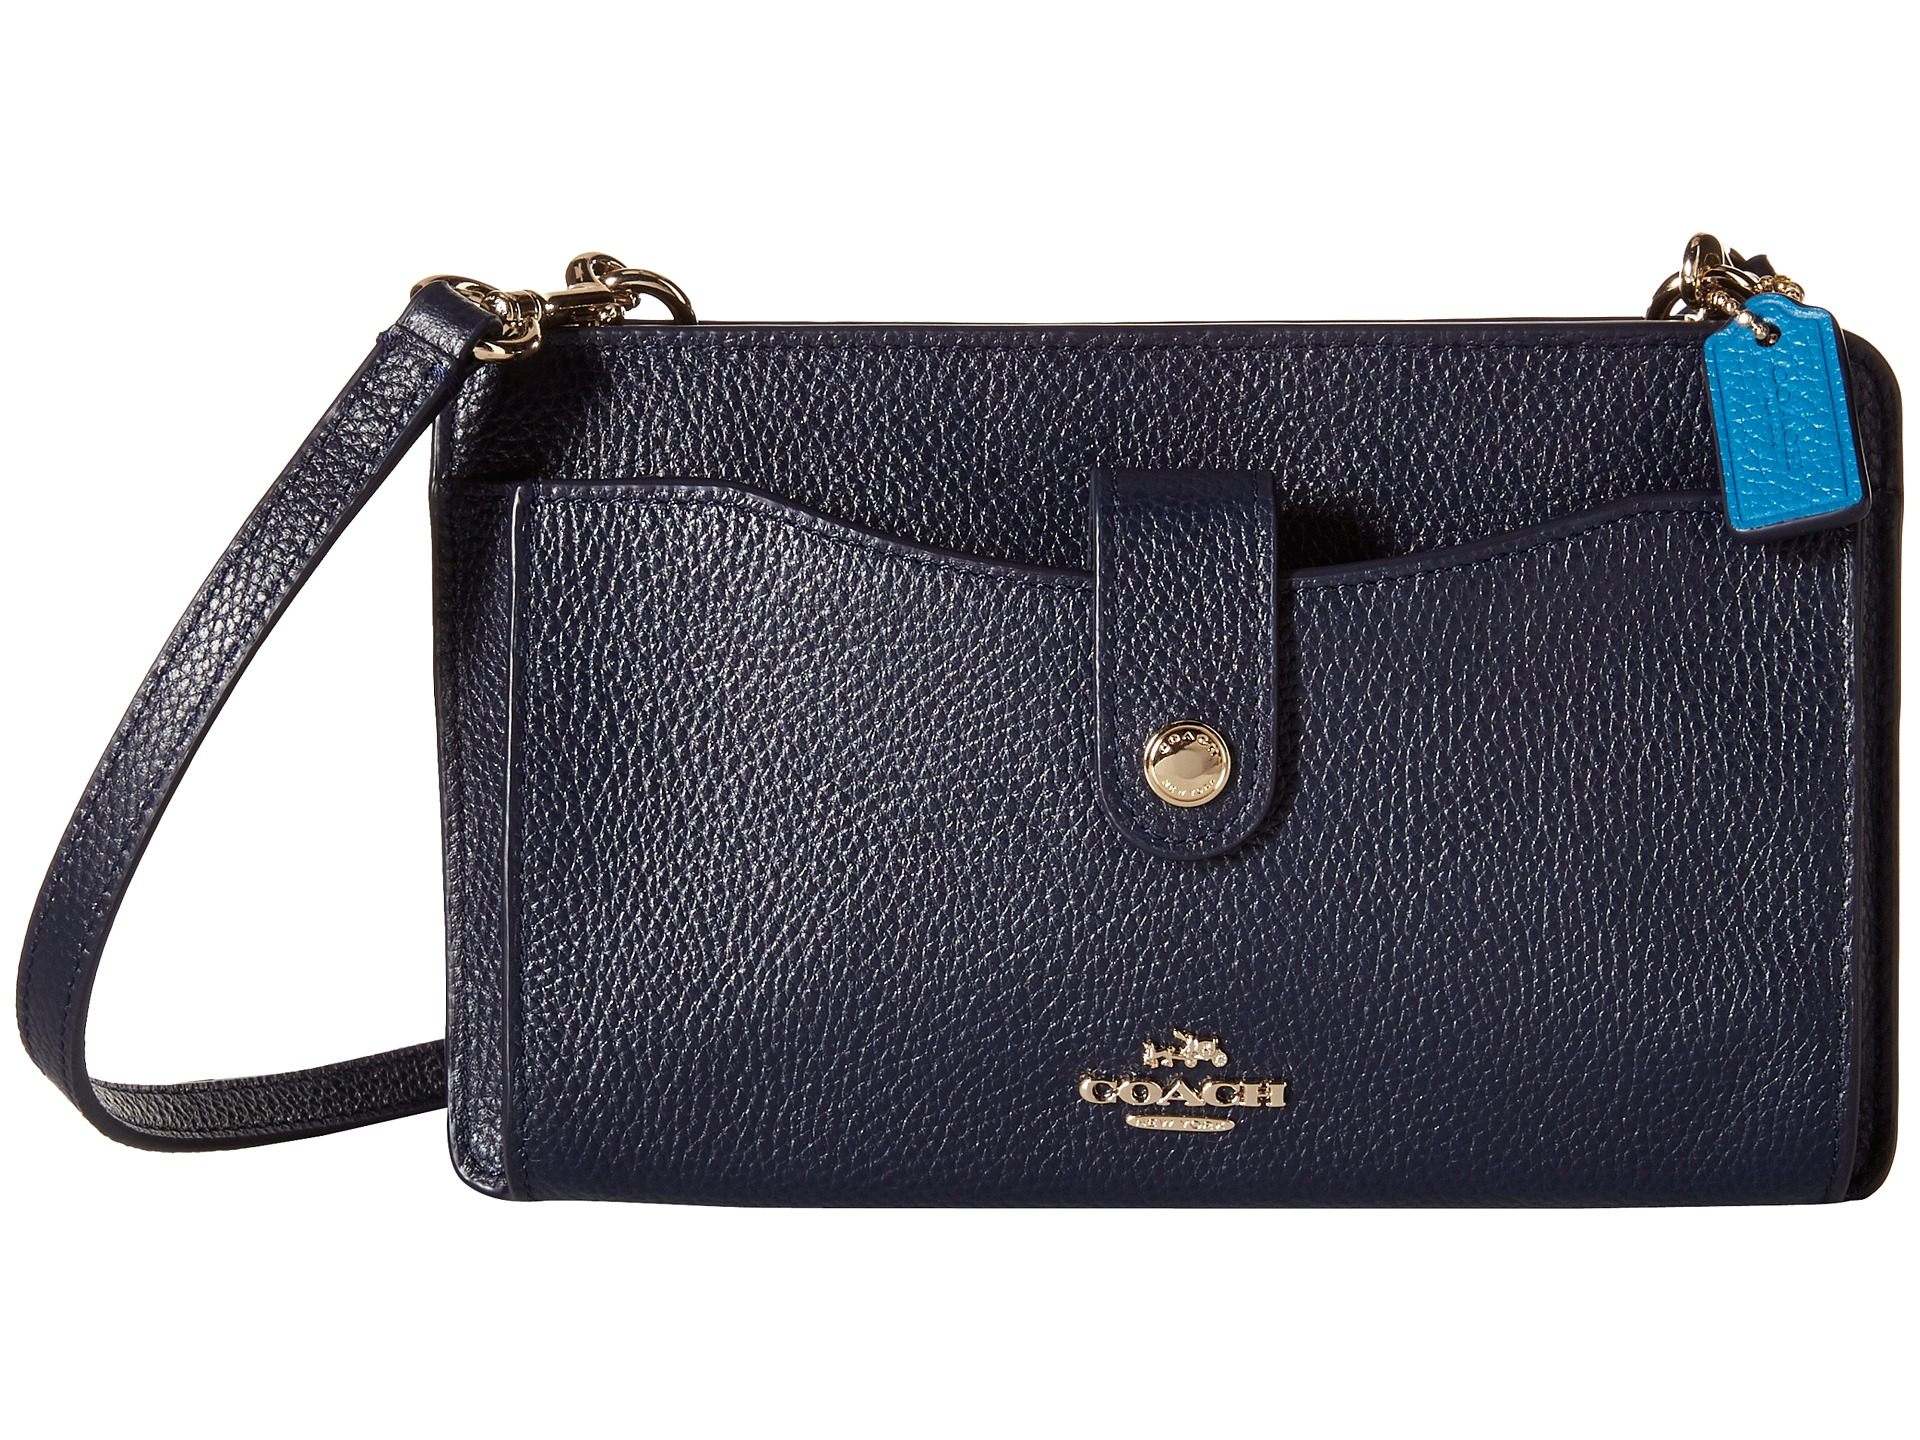 sweden coach leather light gold navy turnlock crossbody 06dd3 076e2  new  style lyst coach color block pop up weekend crossbody in blue 09037 1d494 5ea9e4f64cce6